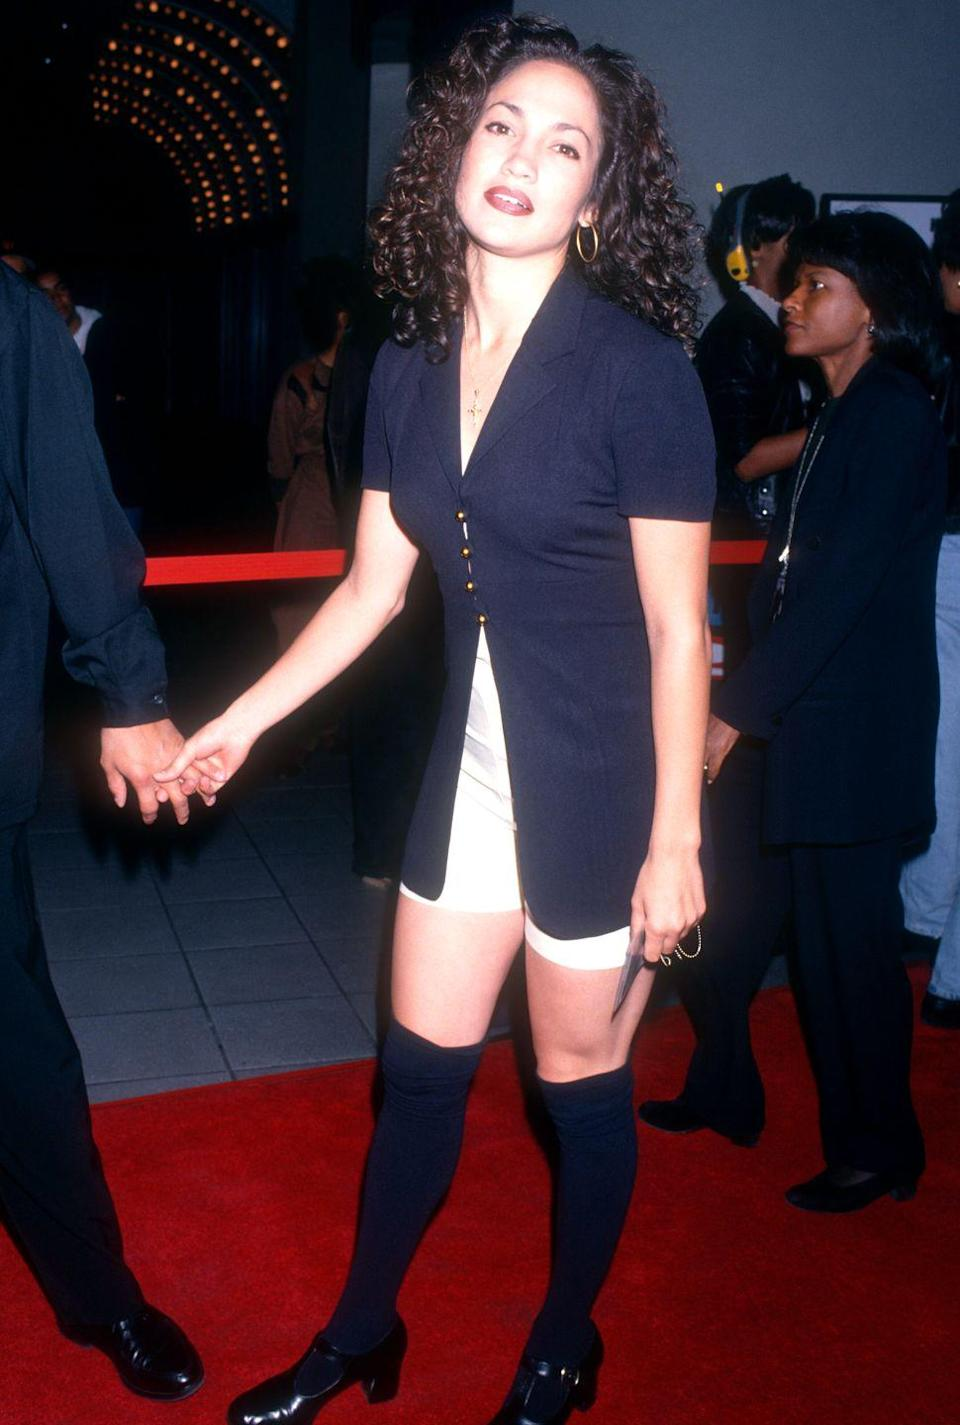 <p>Evoking serious Julia Roberts vibes on the red carpet.</p>